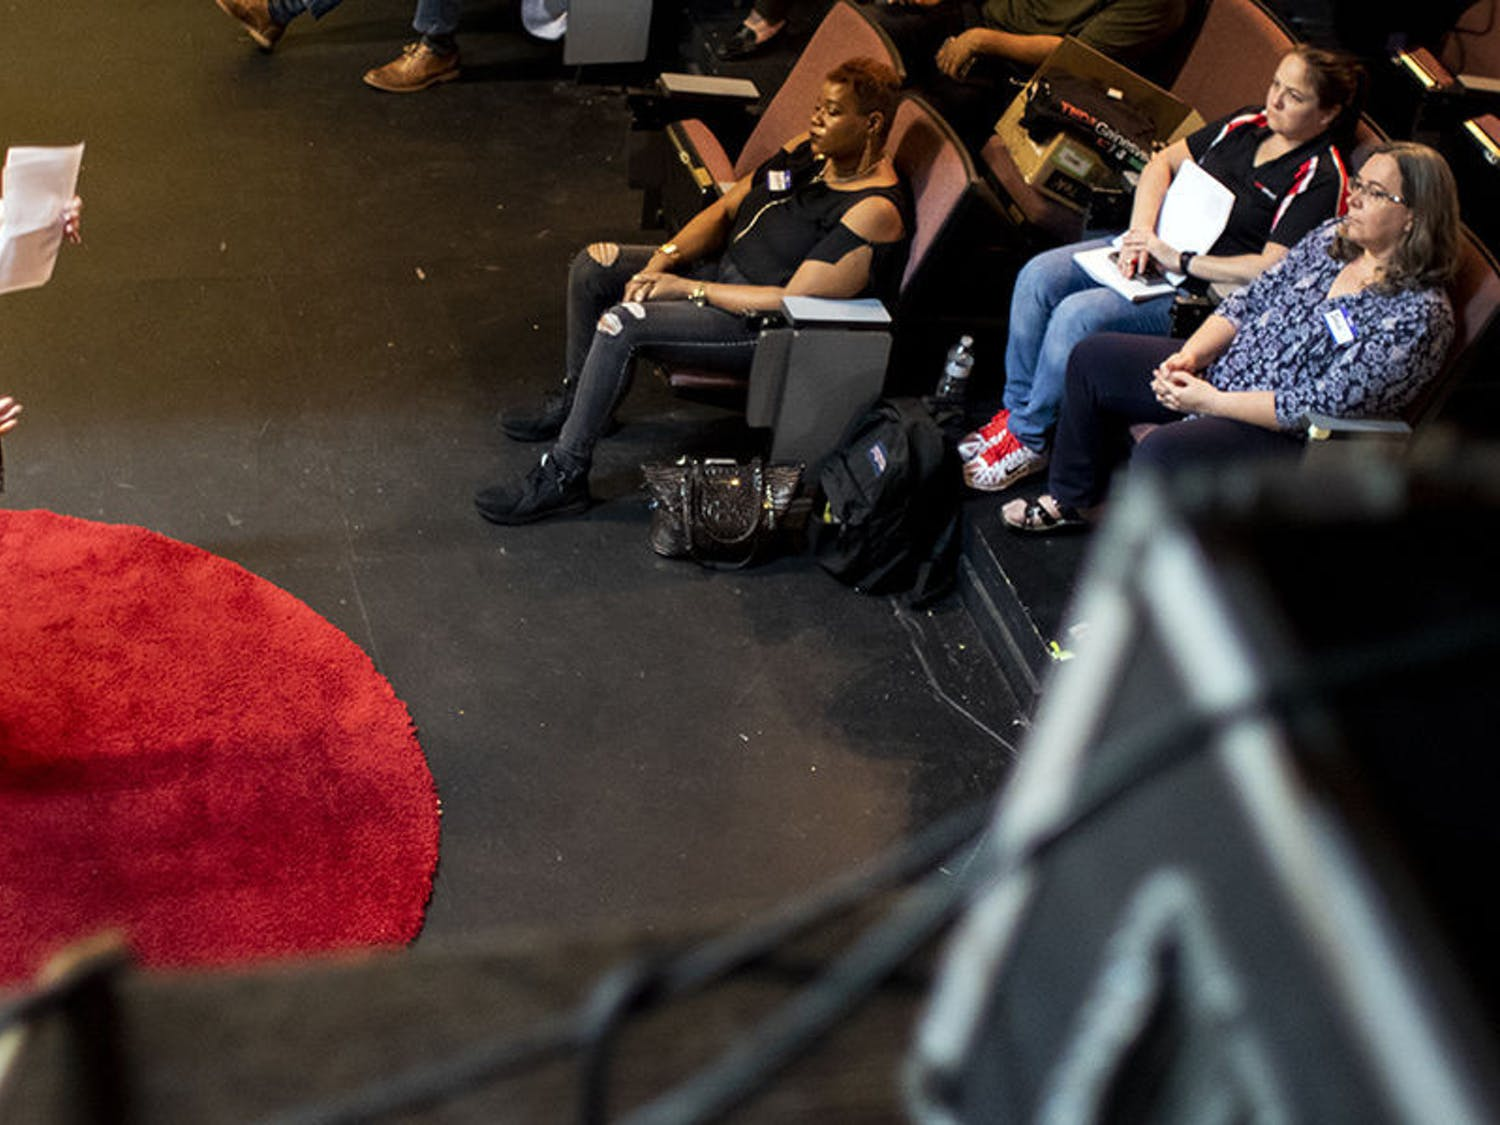 Mary Alford speaks Wednesday during a dress rehearsal for TEDxGainesville: Courageous Conversations at the Acrosstown Repertory Theatre. TEDxGainesville will performat the Cade Museumfor Creativity and Innovation on Saturday Feb.9 at 1 p.m.